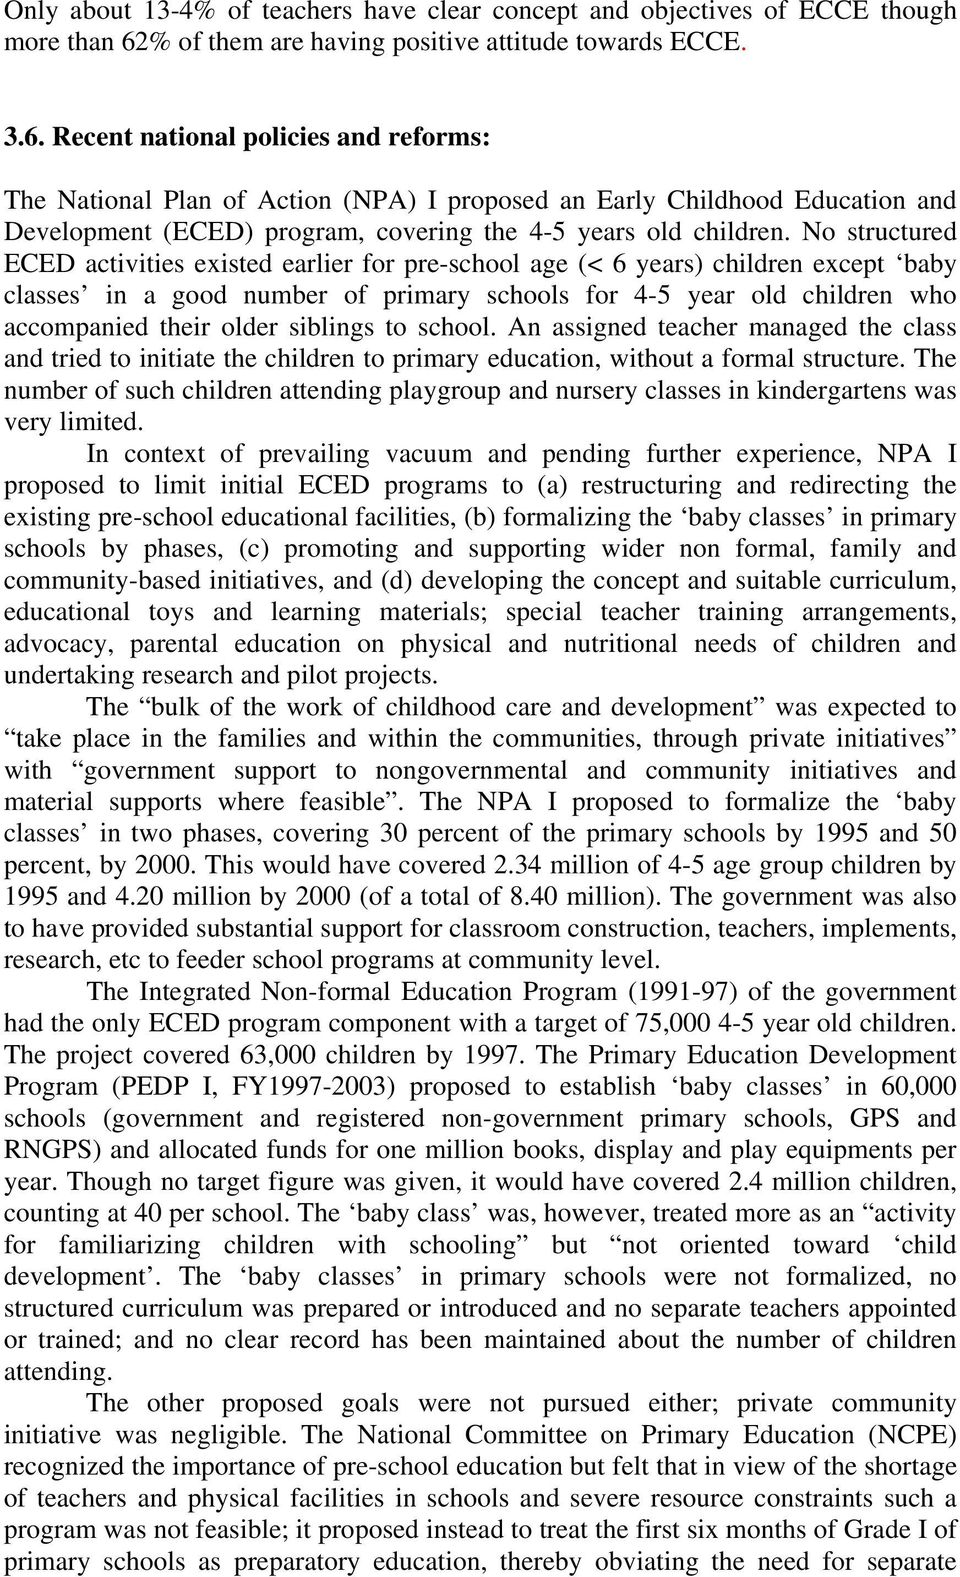 Recent national policies and reforms: The National Plan of Action (NPA) I proposed an Early Childhood Education and Development (ECED) program, covering the 4-5 years old children.